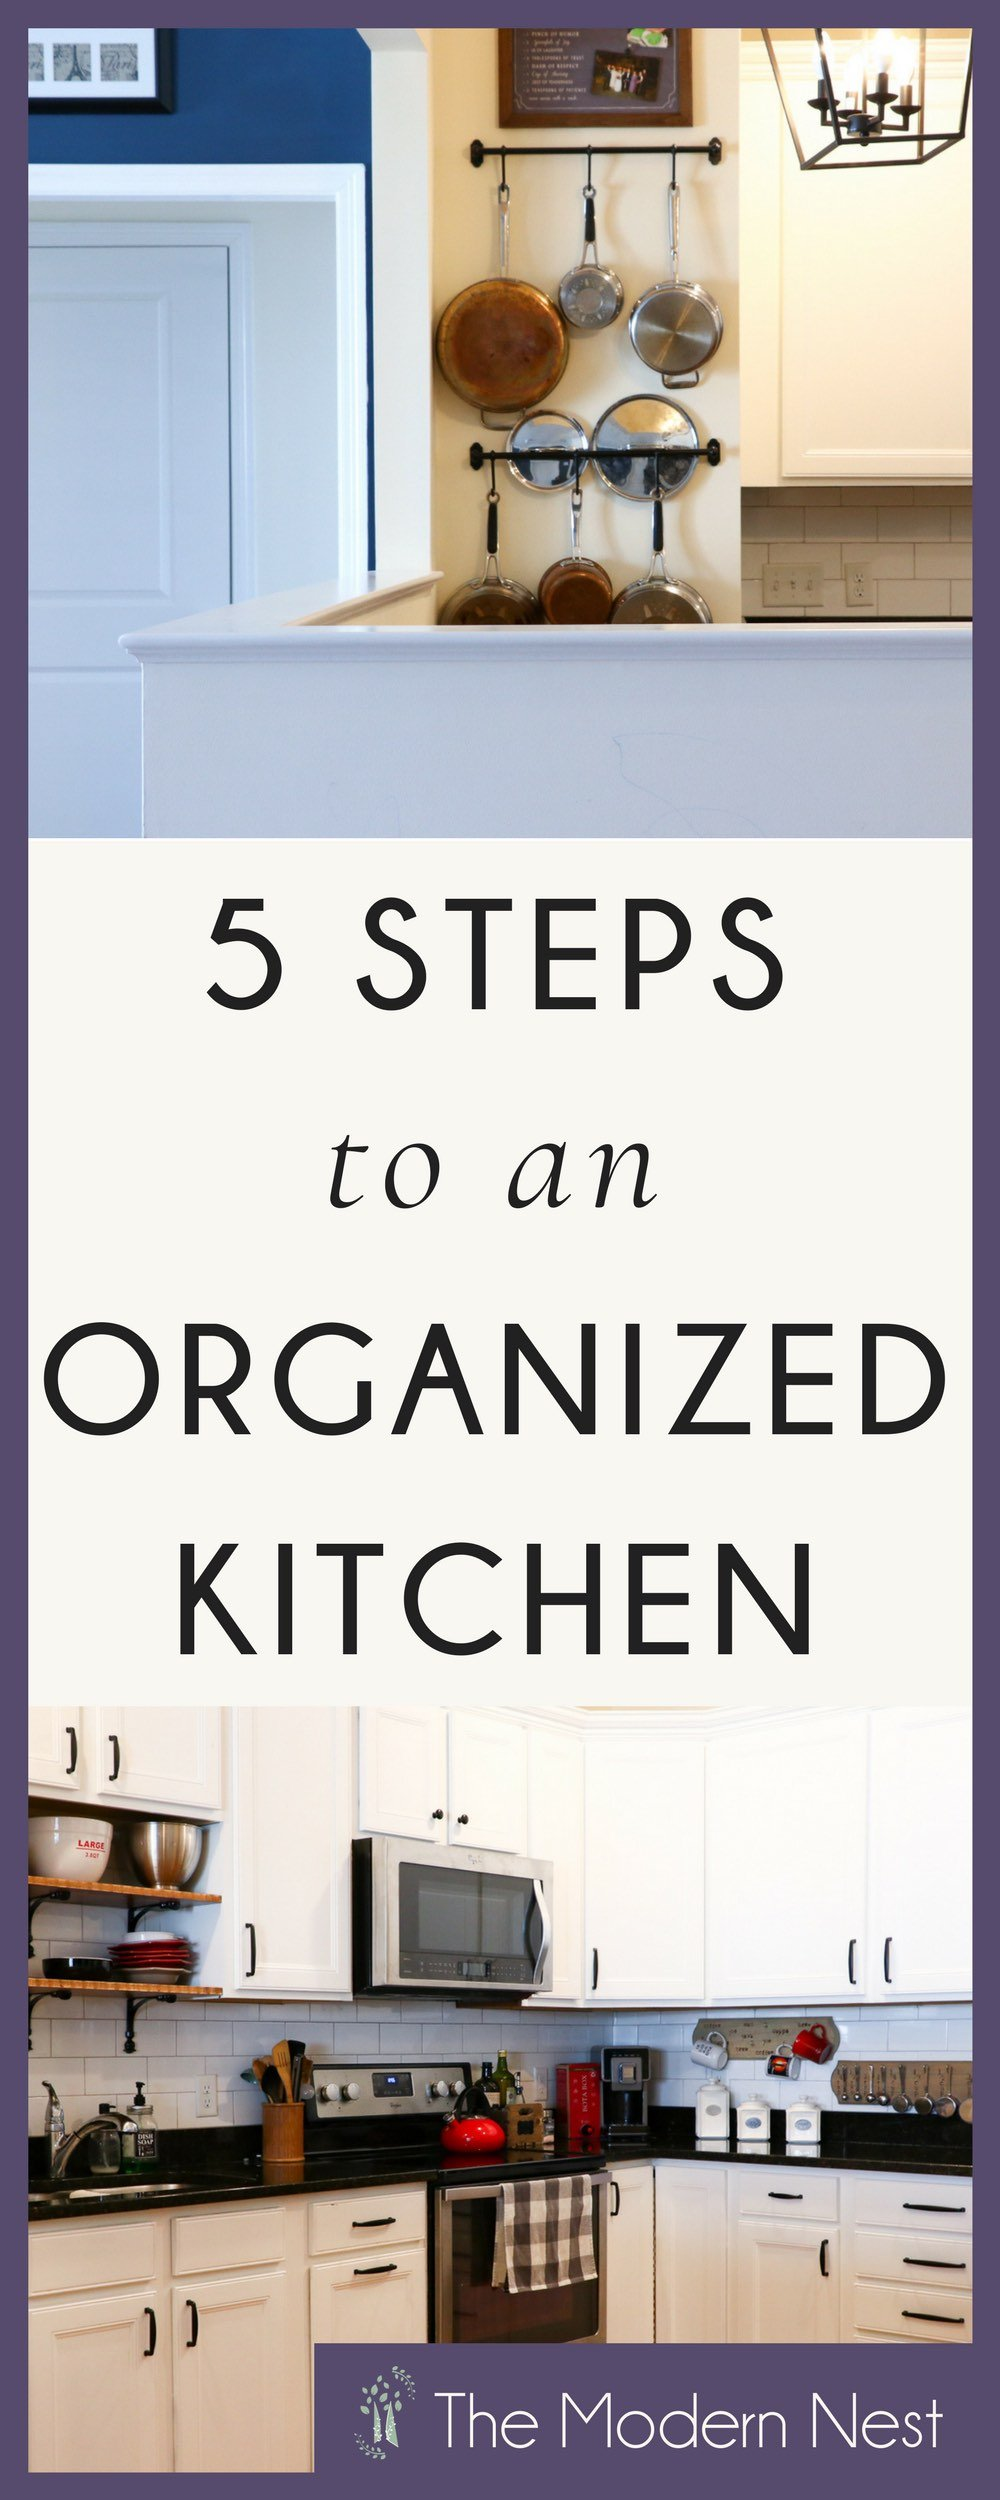 5 Steps to an Orderly Kitchen - The Modern Nest